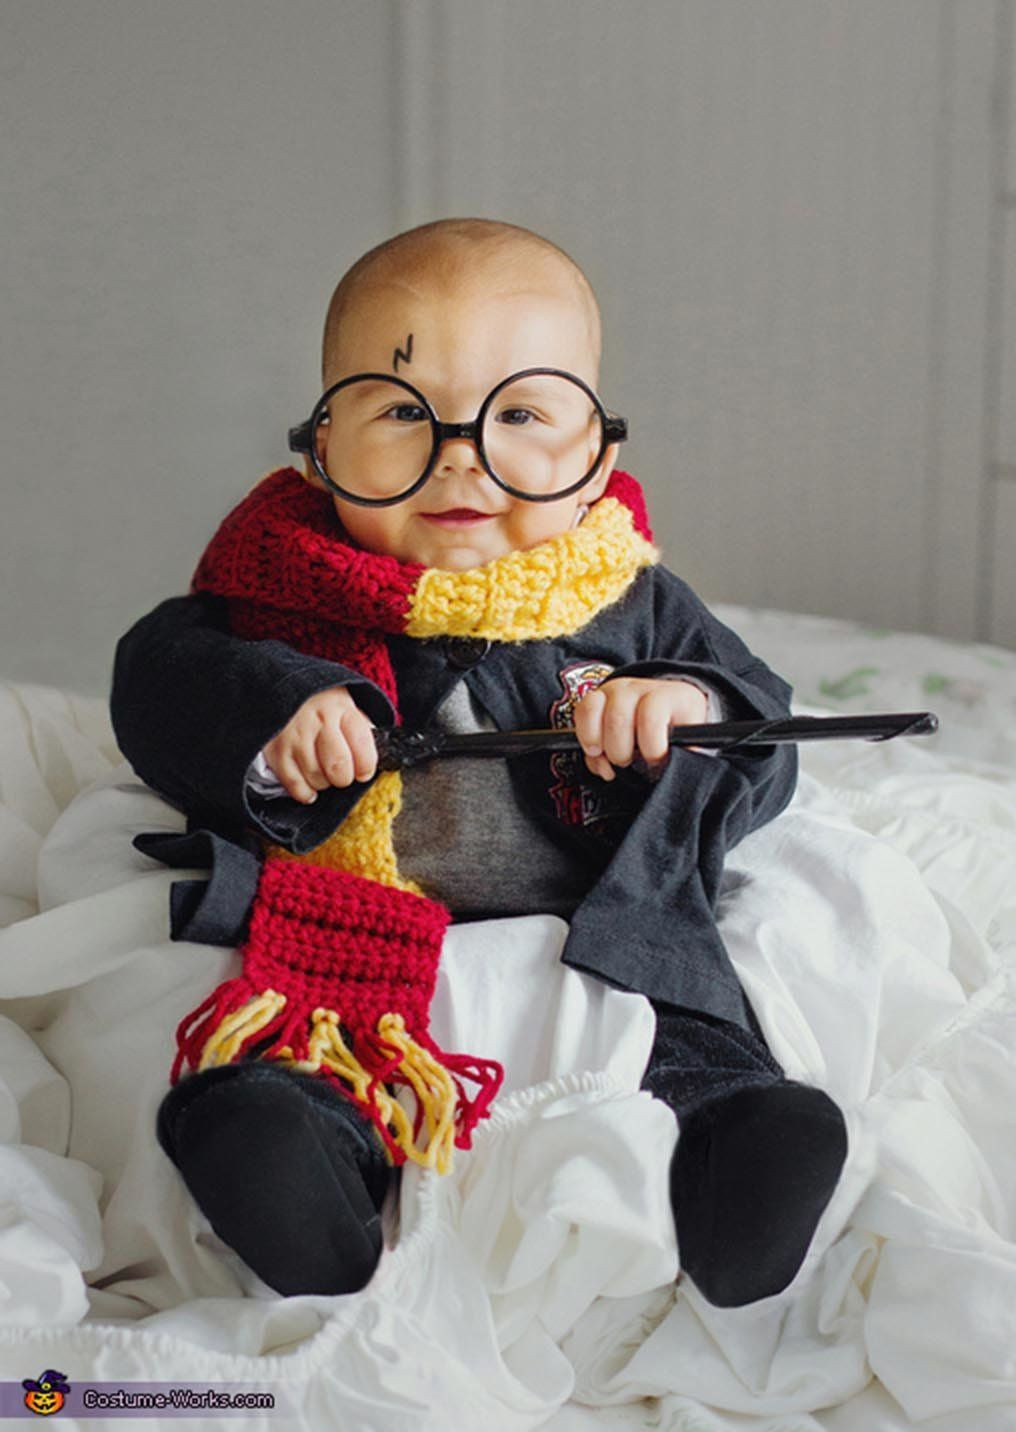 35 Babies In Halloween Costumes Who Actually Couldnt Be